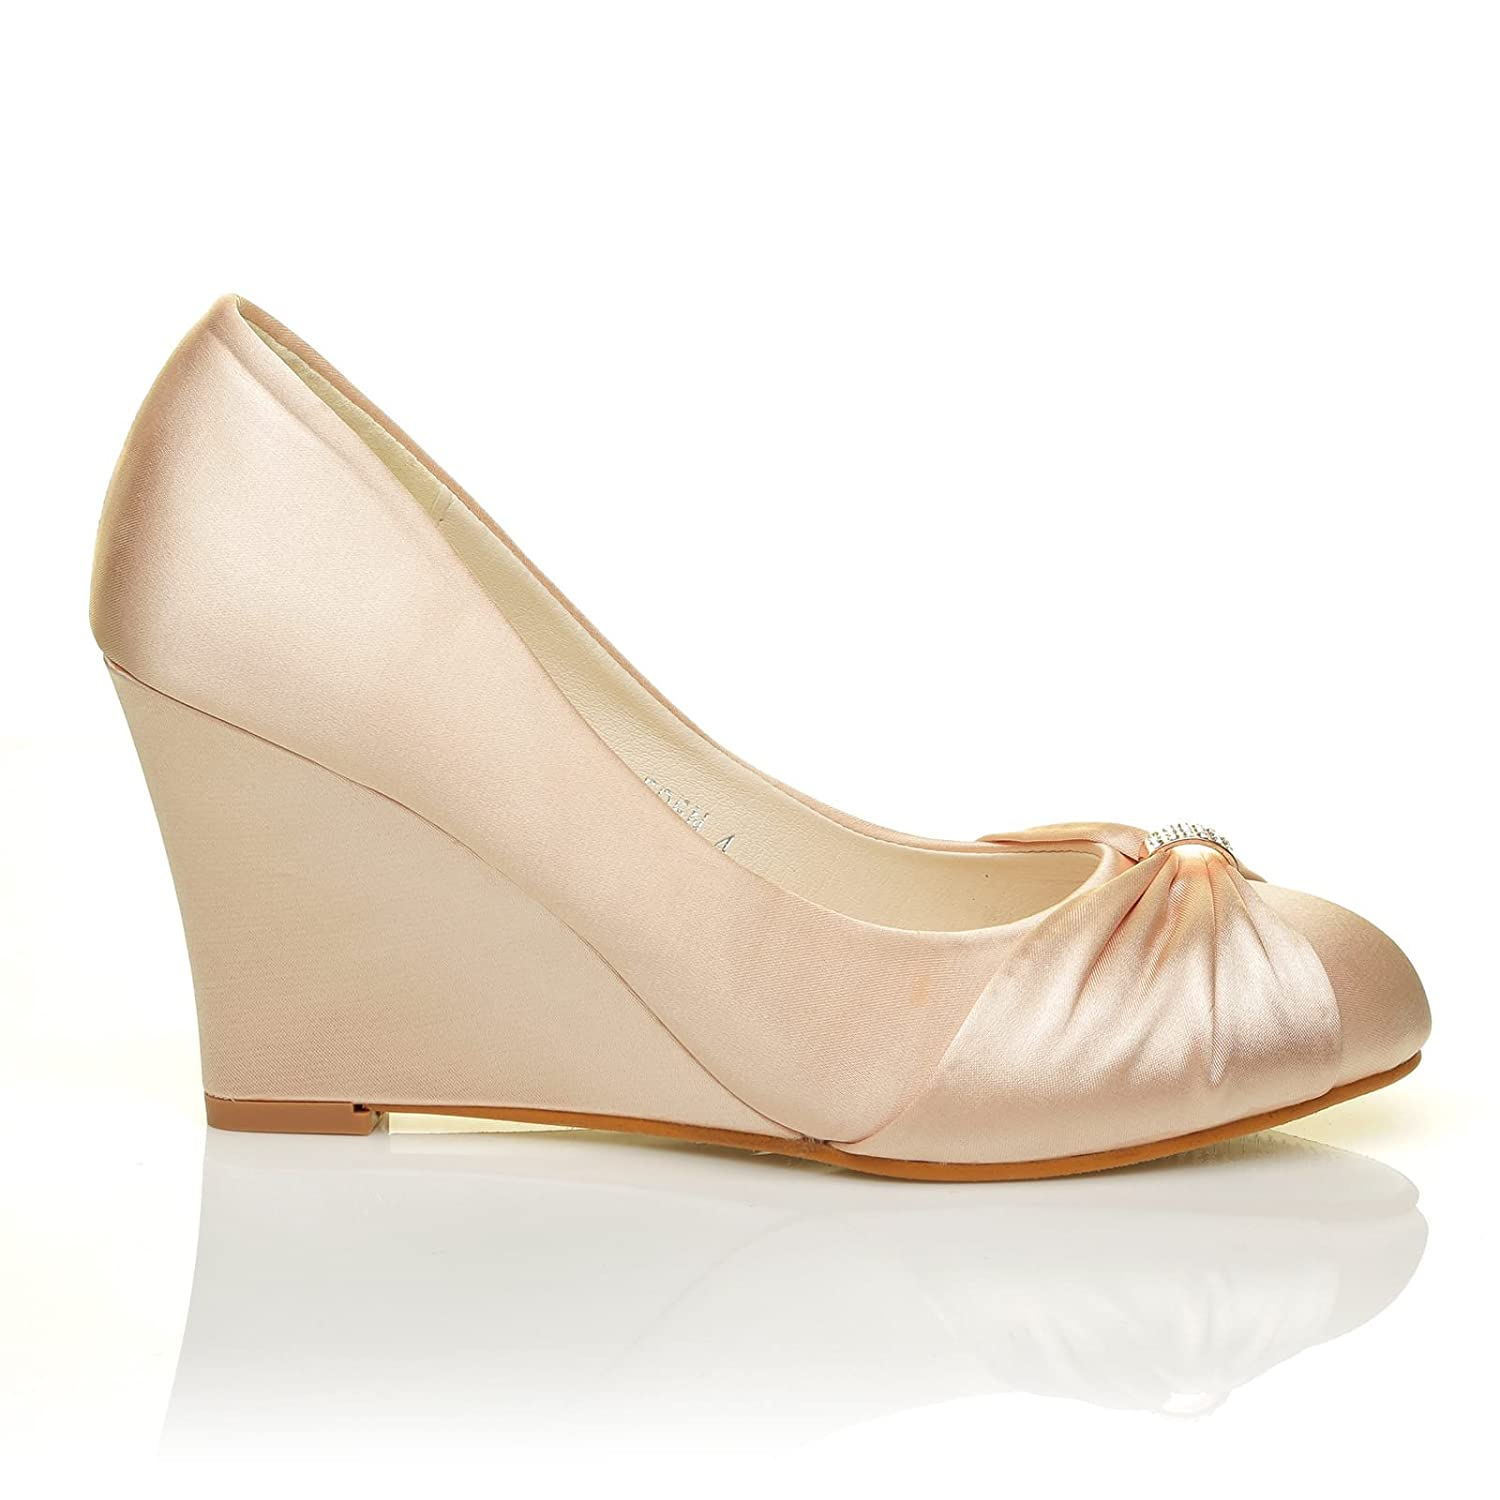 63acbf405488 Eden Champagne Gold Satin Wedge High Heel Bridal Court Shoes  Amazon.co.uk   Shoes   Bags